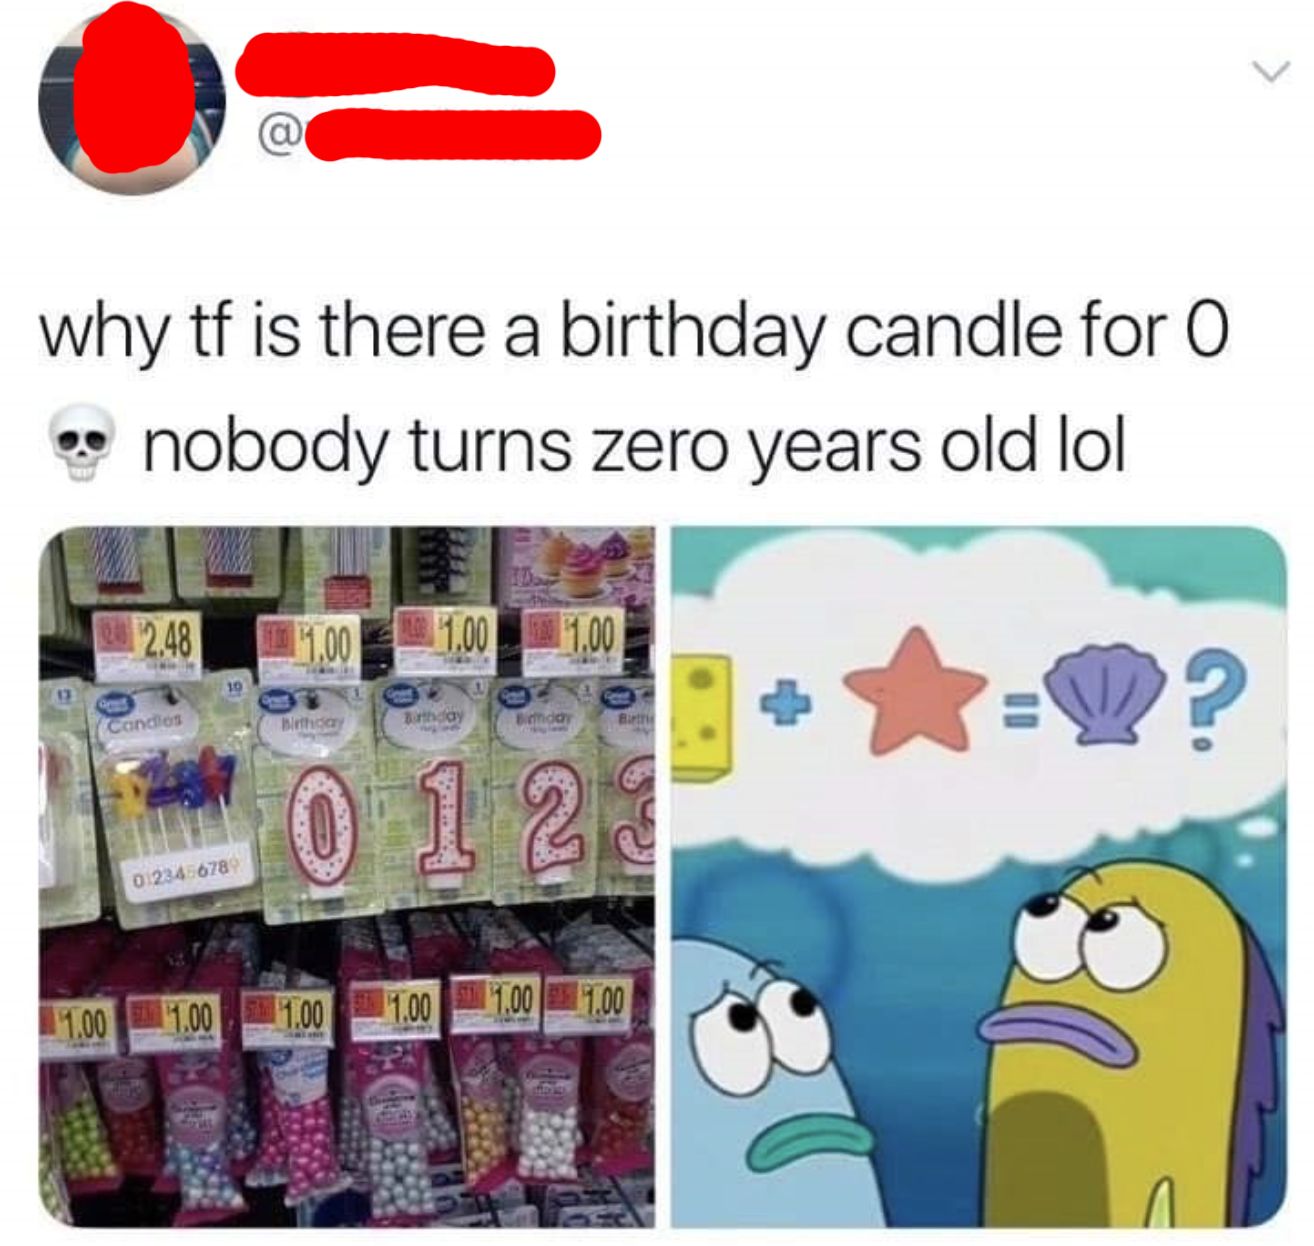 tweet reading why tf is there a birthday candle for 0 nobody turns zero years old